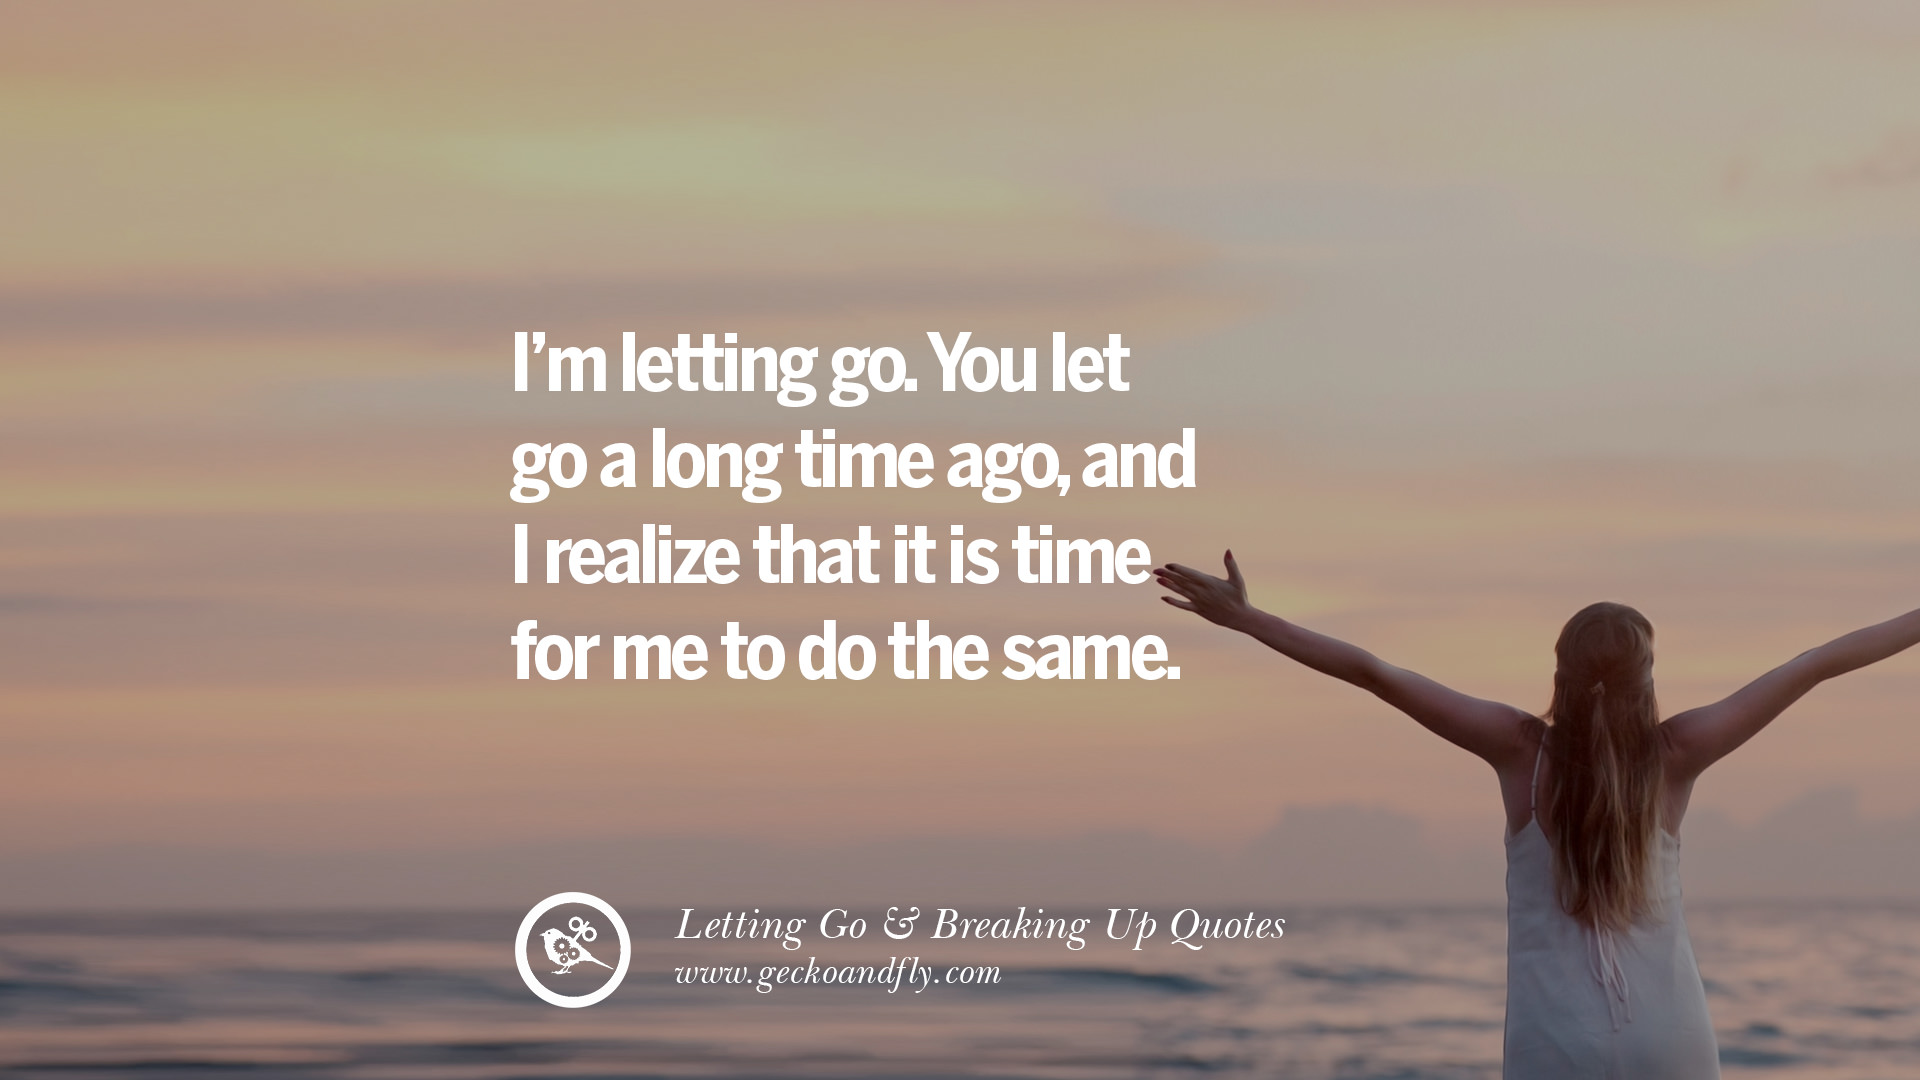 Image of: Categories You Let Go Long Time Ago And Realize That It Is Time For Me To Do The Same Geckoandfly 20 Encouraging Quotes About Moving Forward From Bad Relationship